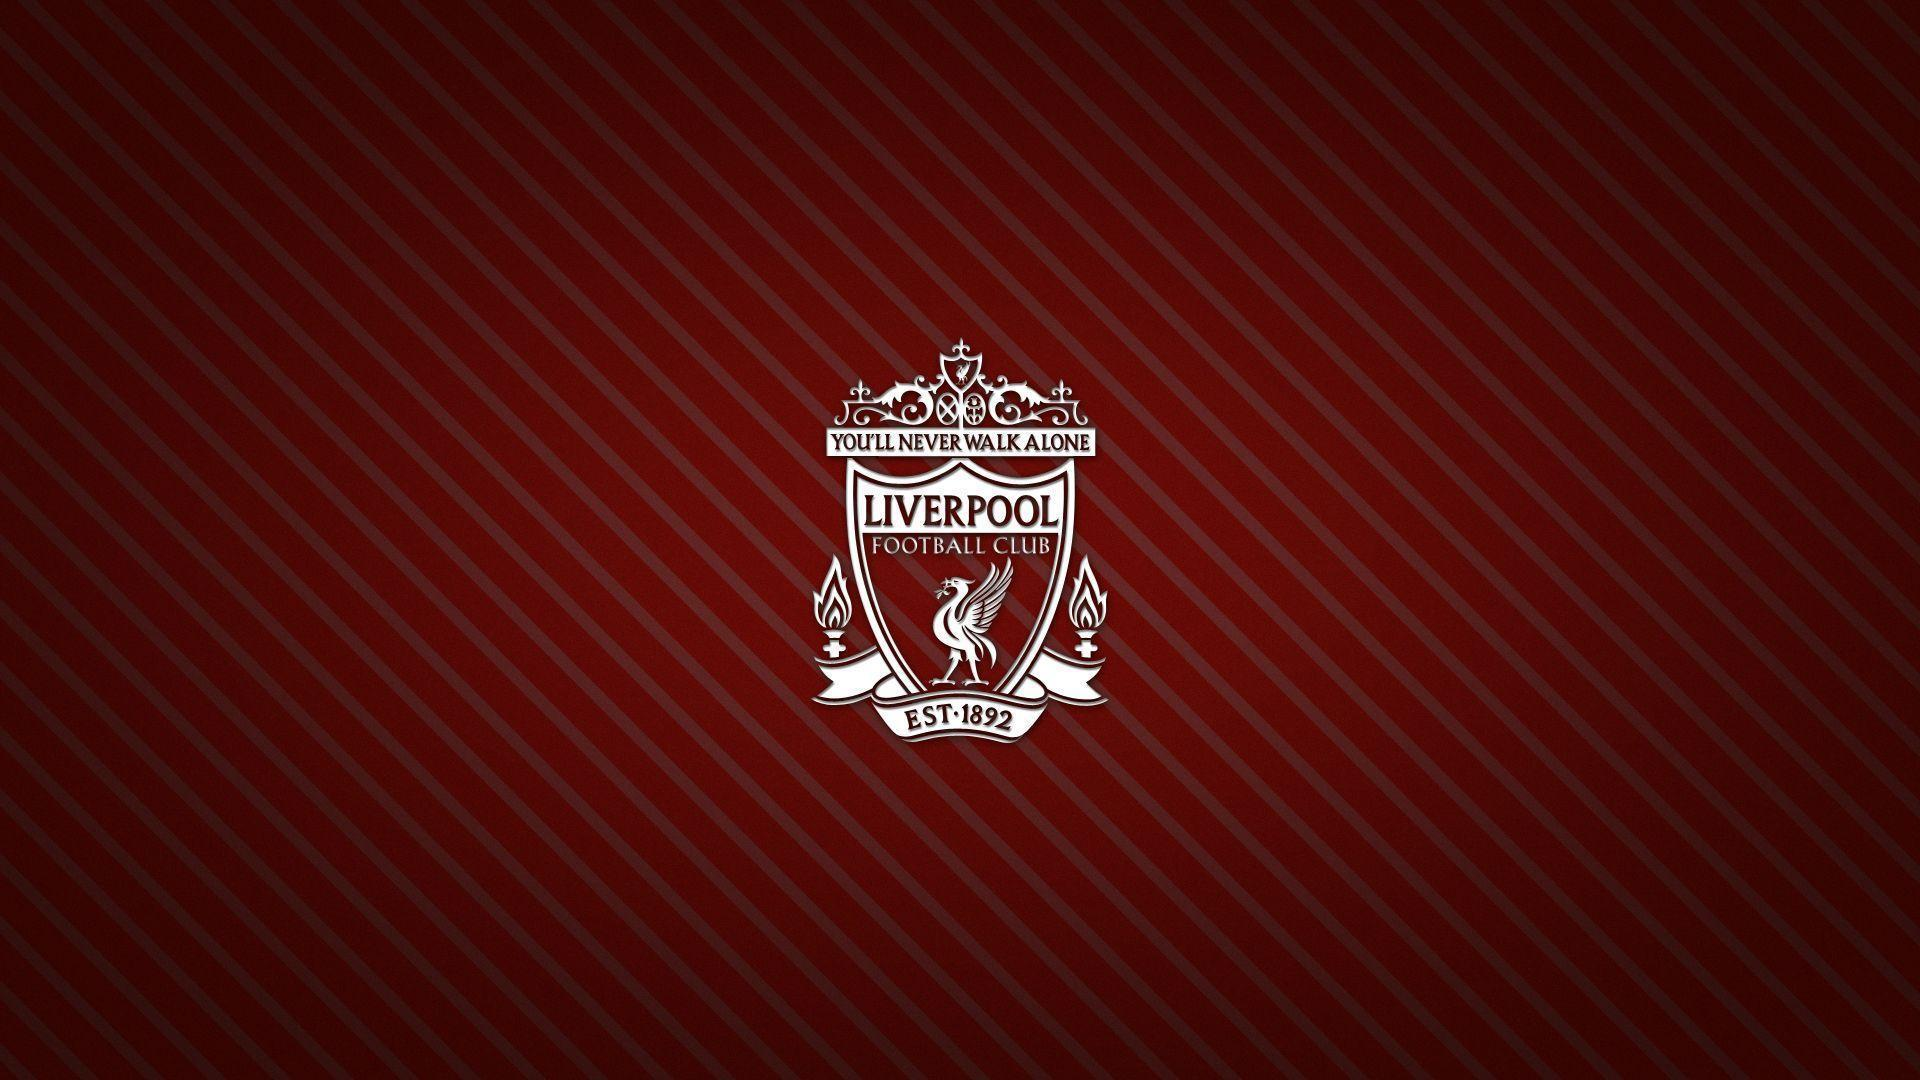 Image For > Liverpool Fc Wallpapers 2014